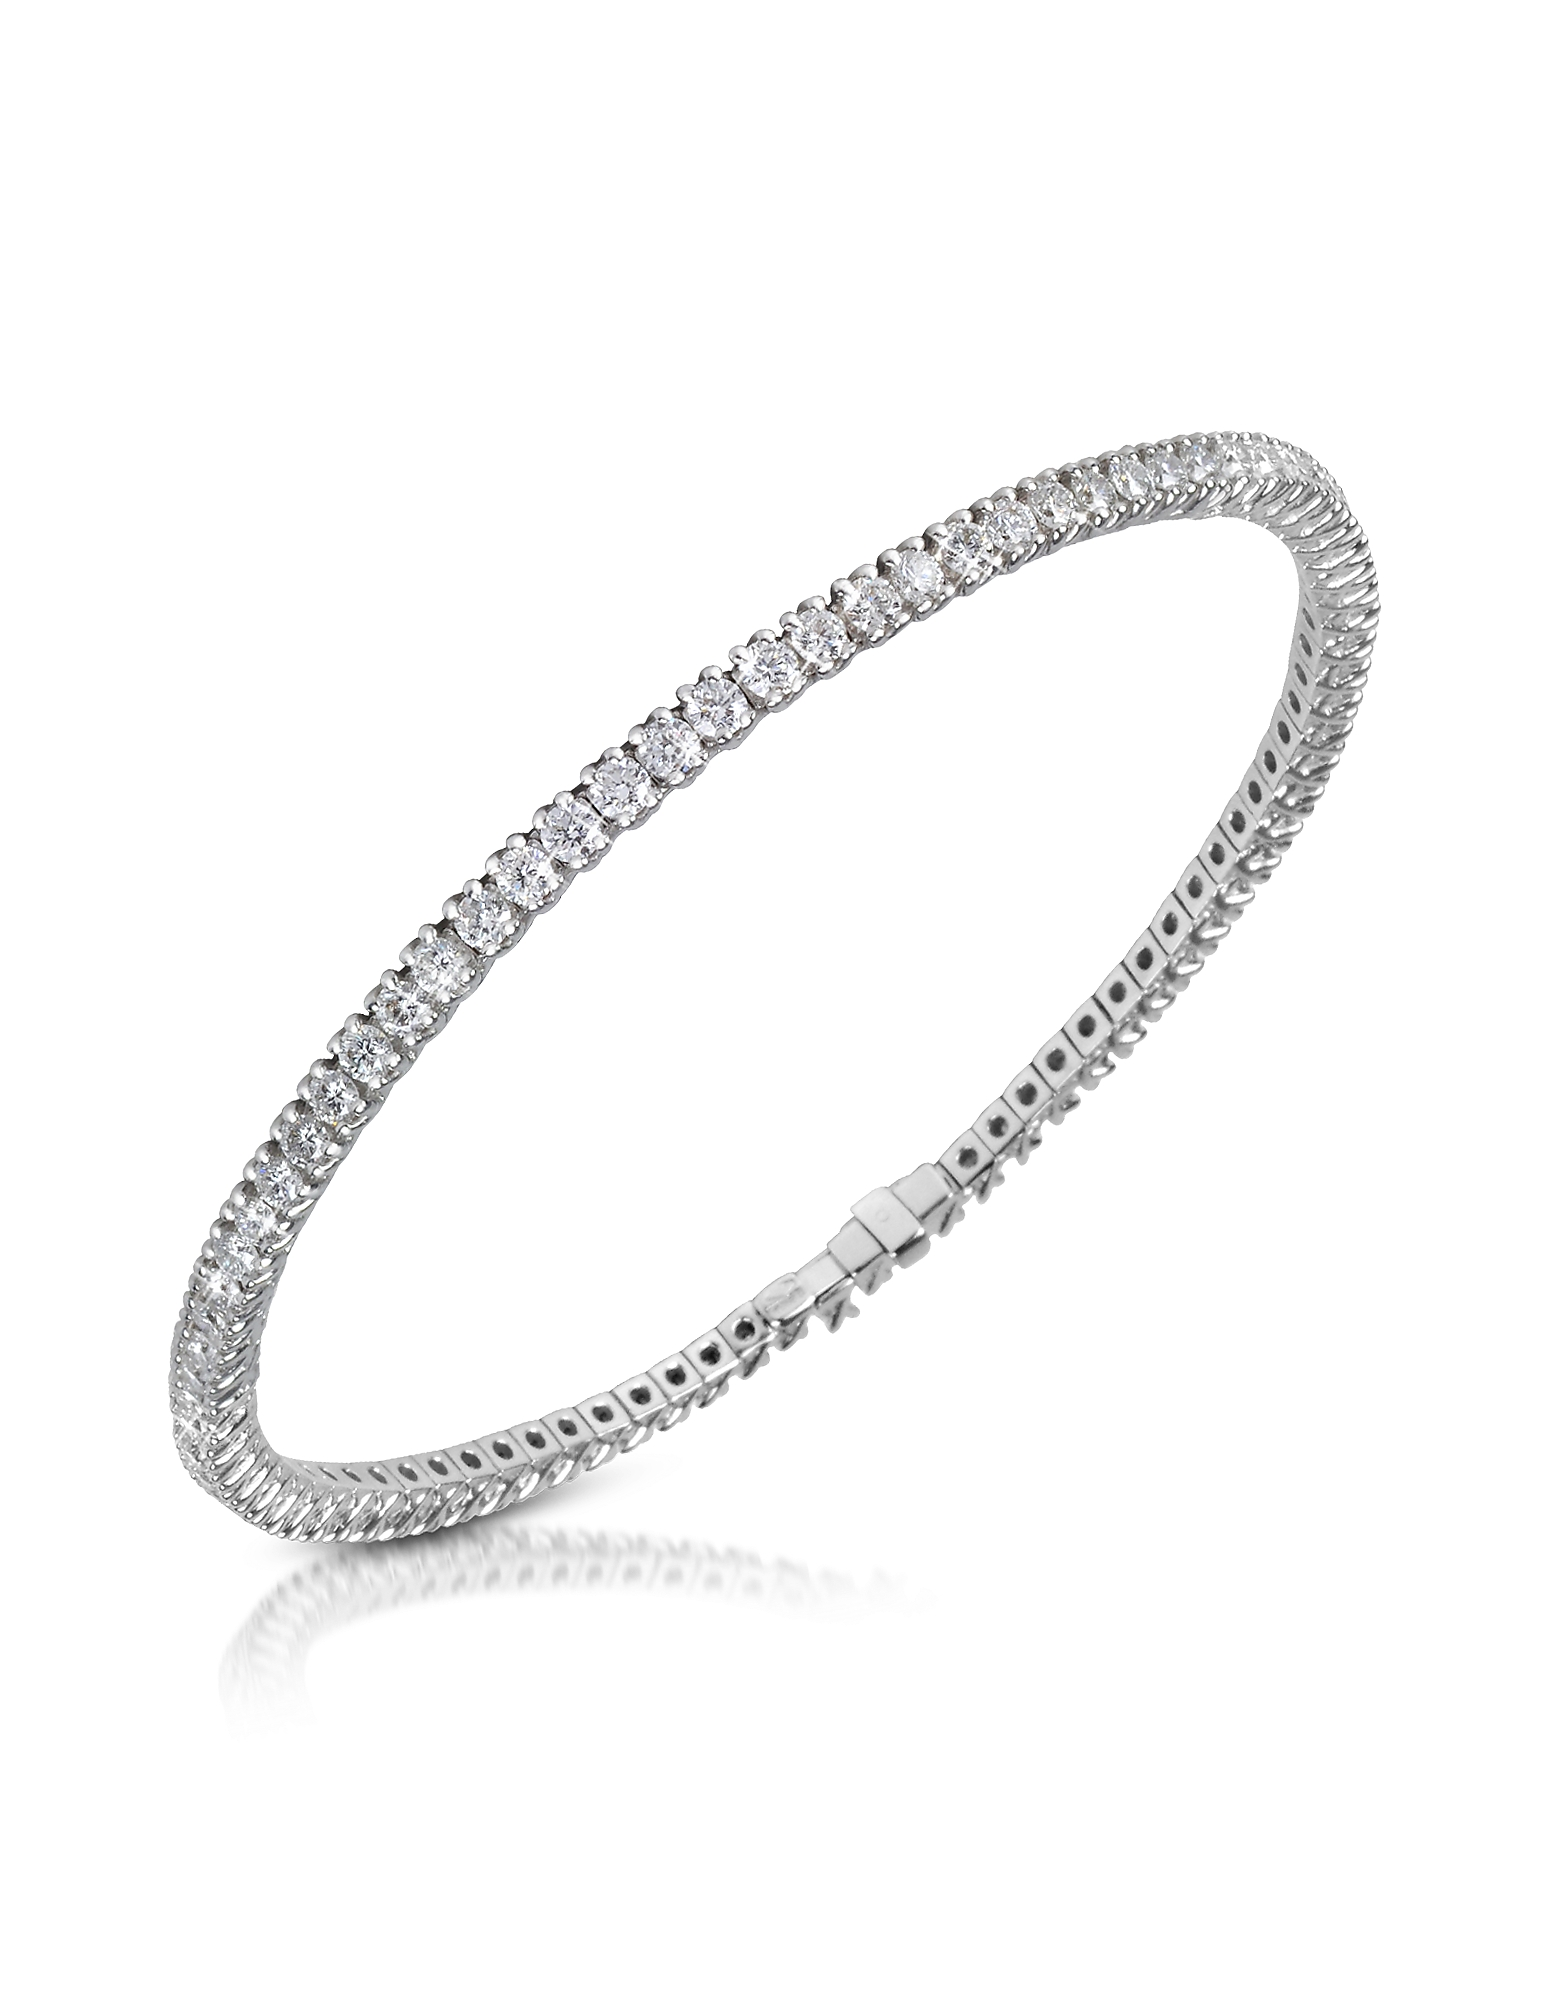 Forzieri Bracelets, White Diamond Eternity 18K Gold Tennis Bracelet